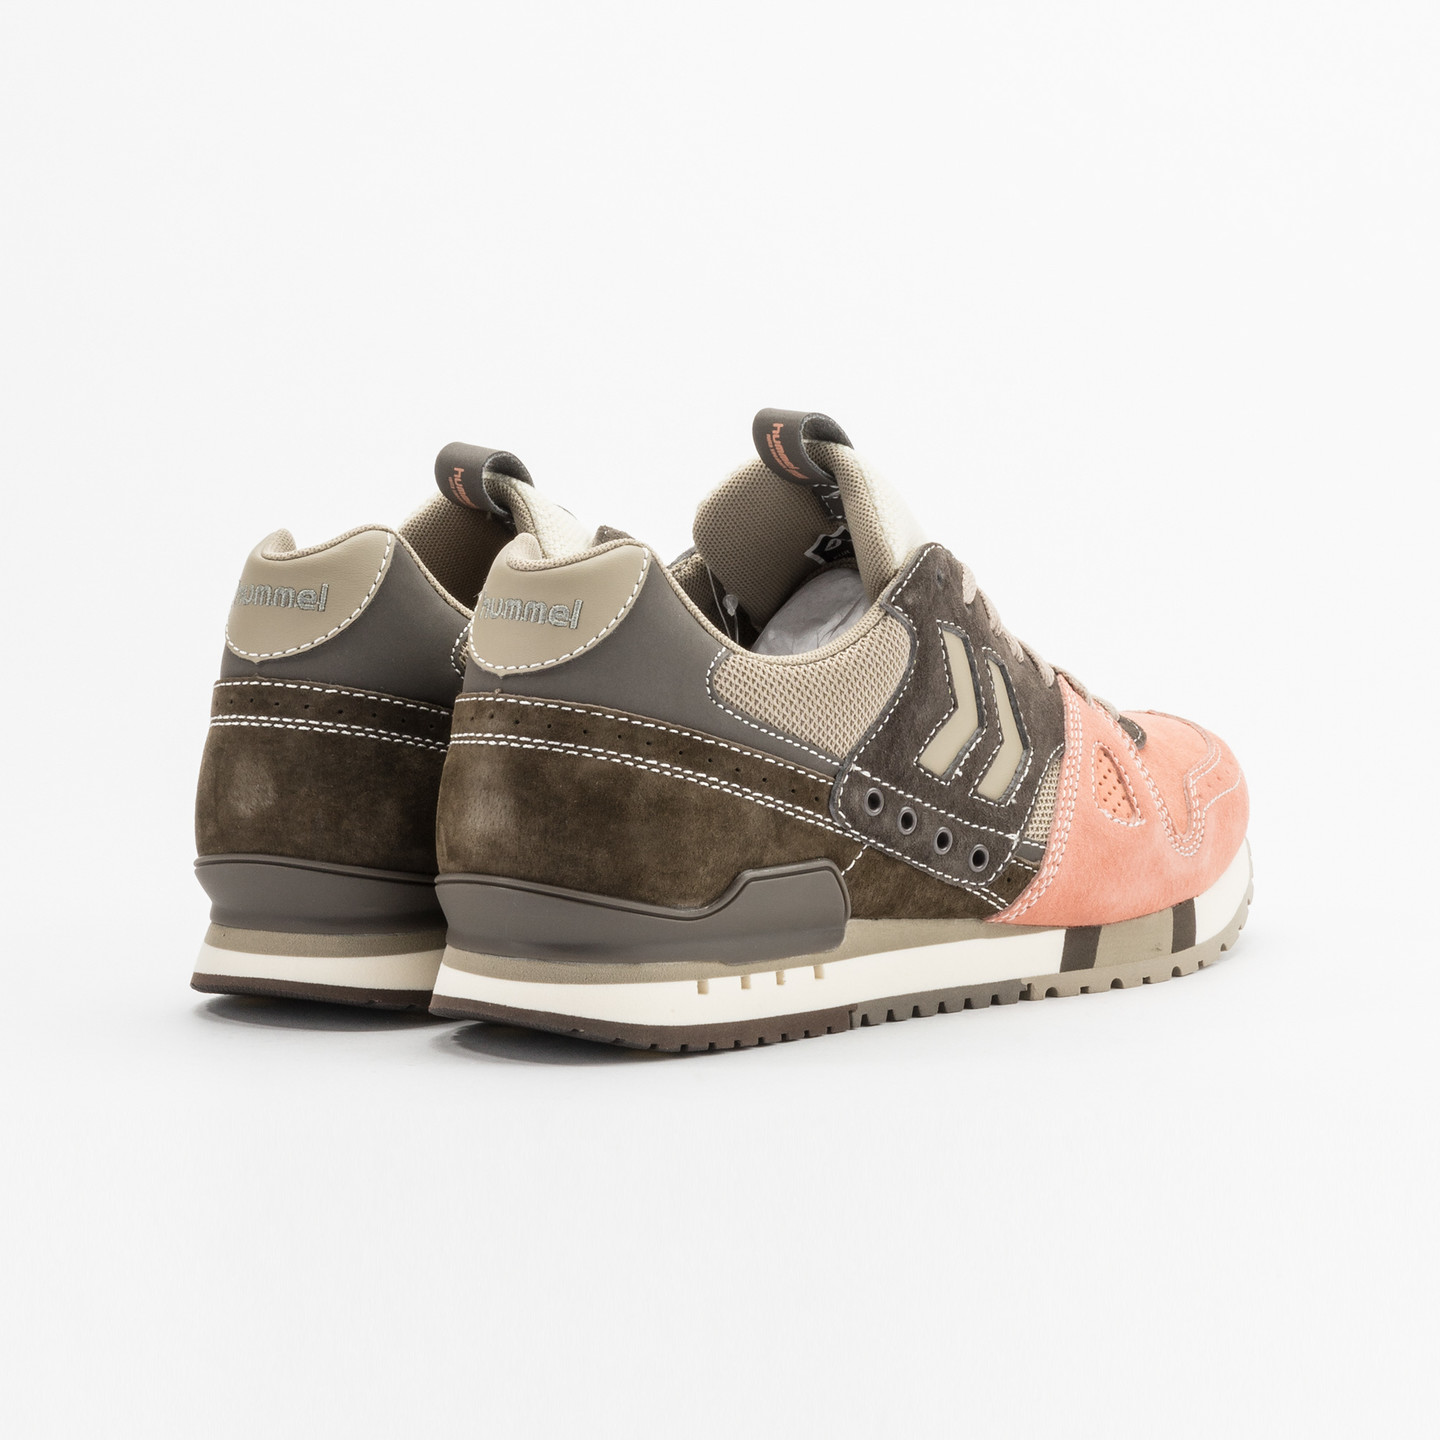 Hummel Marathona OG Mita 'Danish Salmon' Chinchilla / Salmon 63603-1515-44